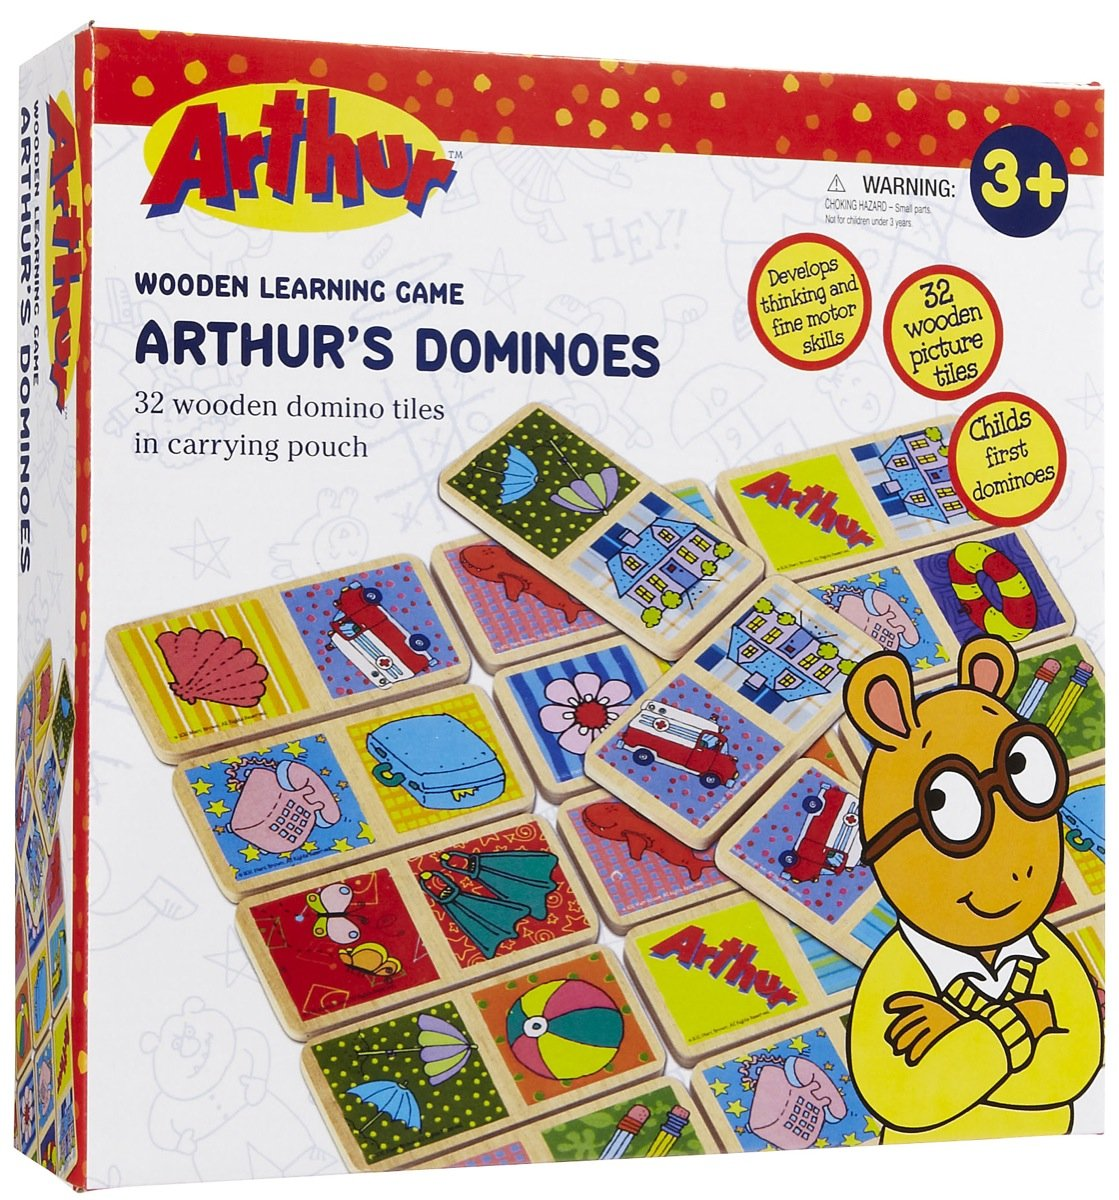 Arthur's Dominoes (Fortune East Group)